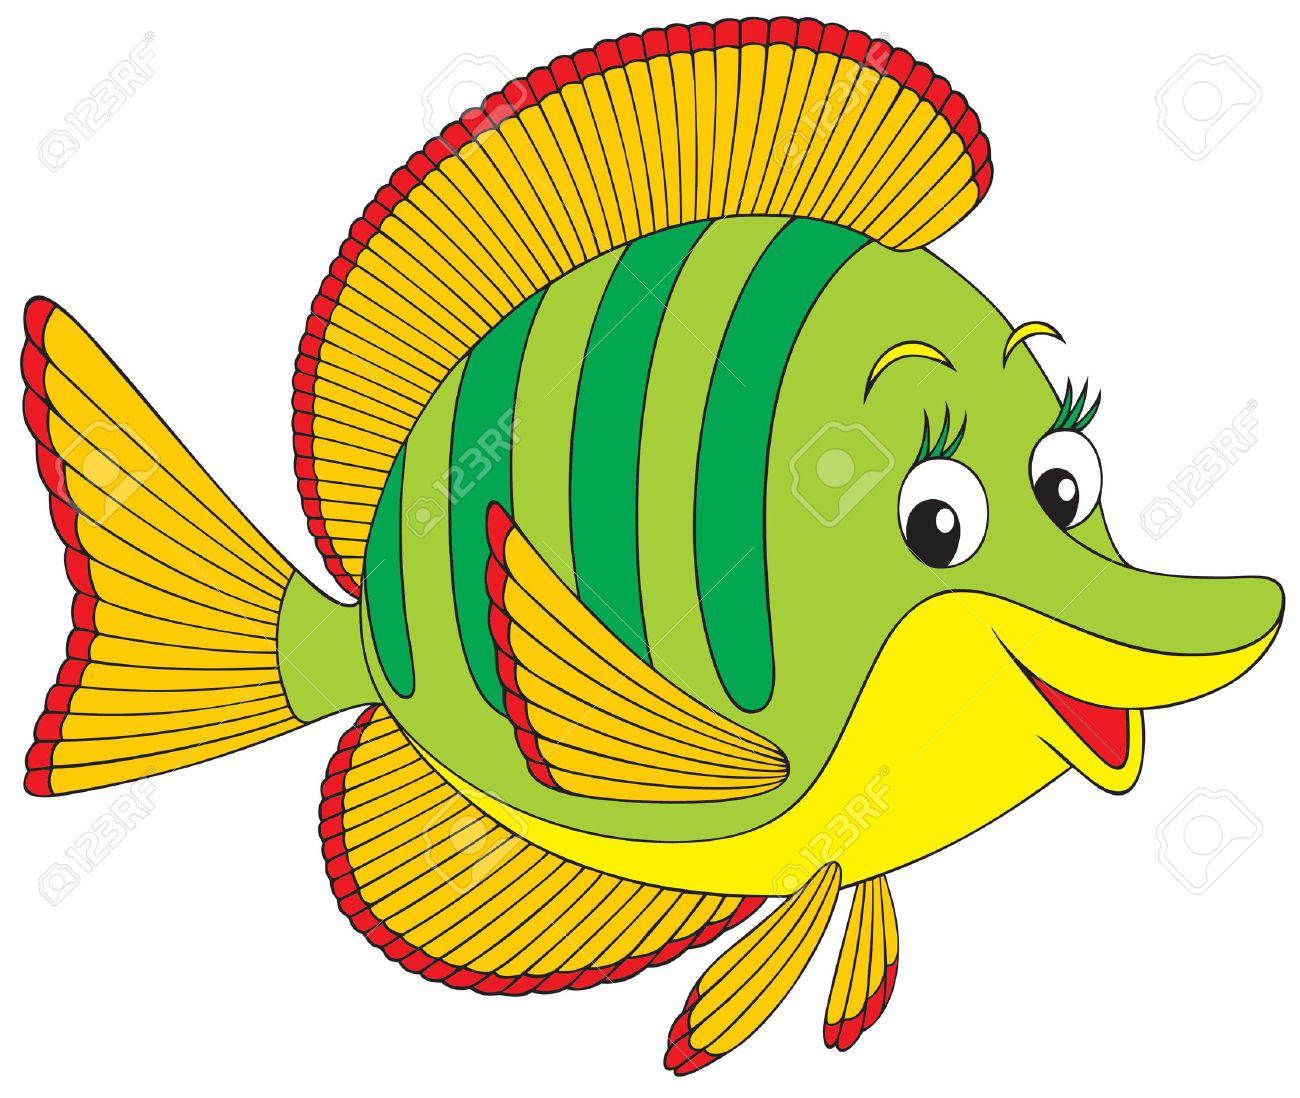 Angelfish clipart #8, Download drawings